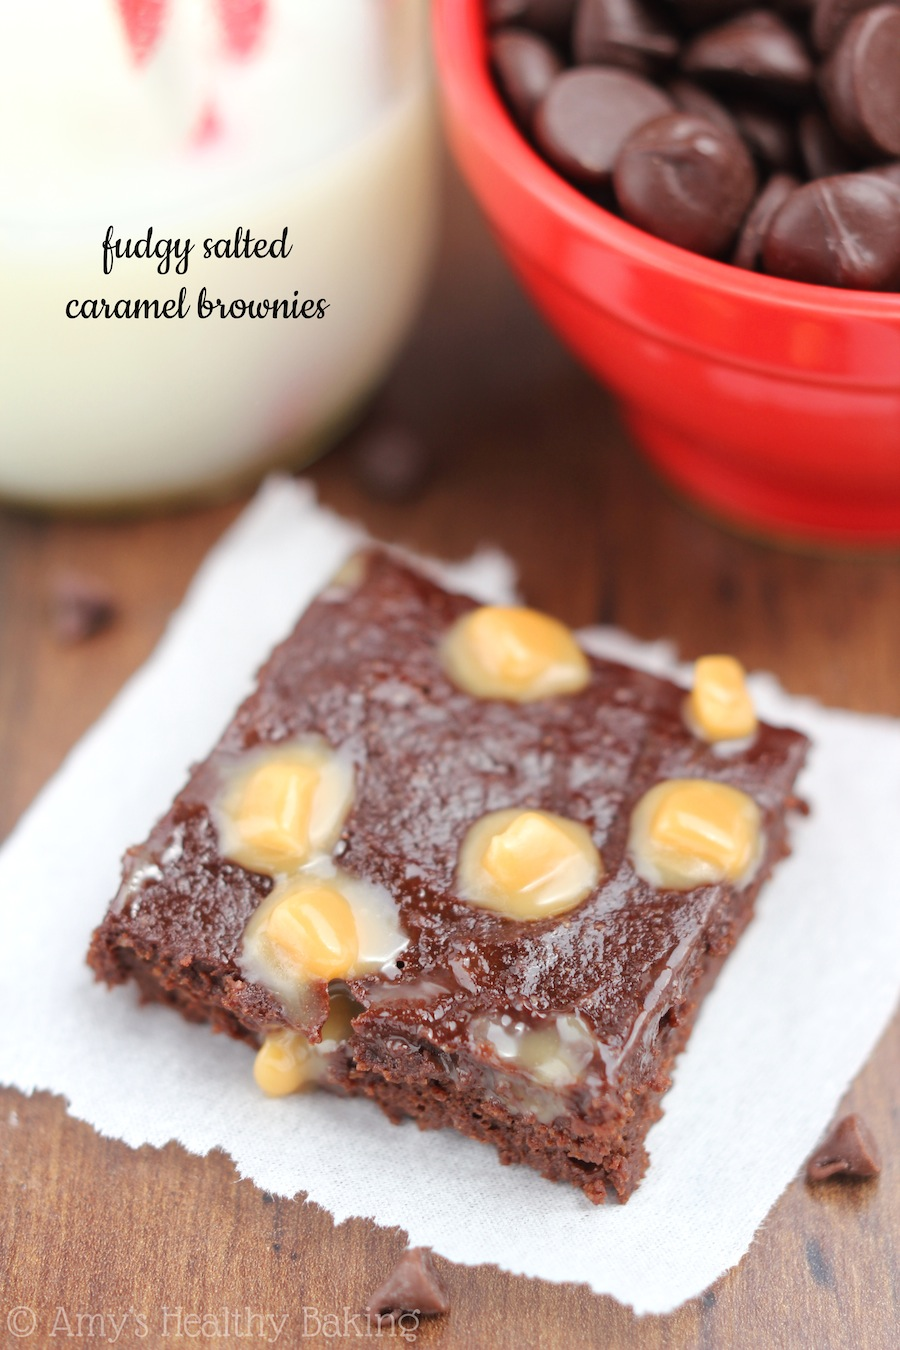 ... caramel brownies fudgy caramel brownies recipe fudgy caramel brownies